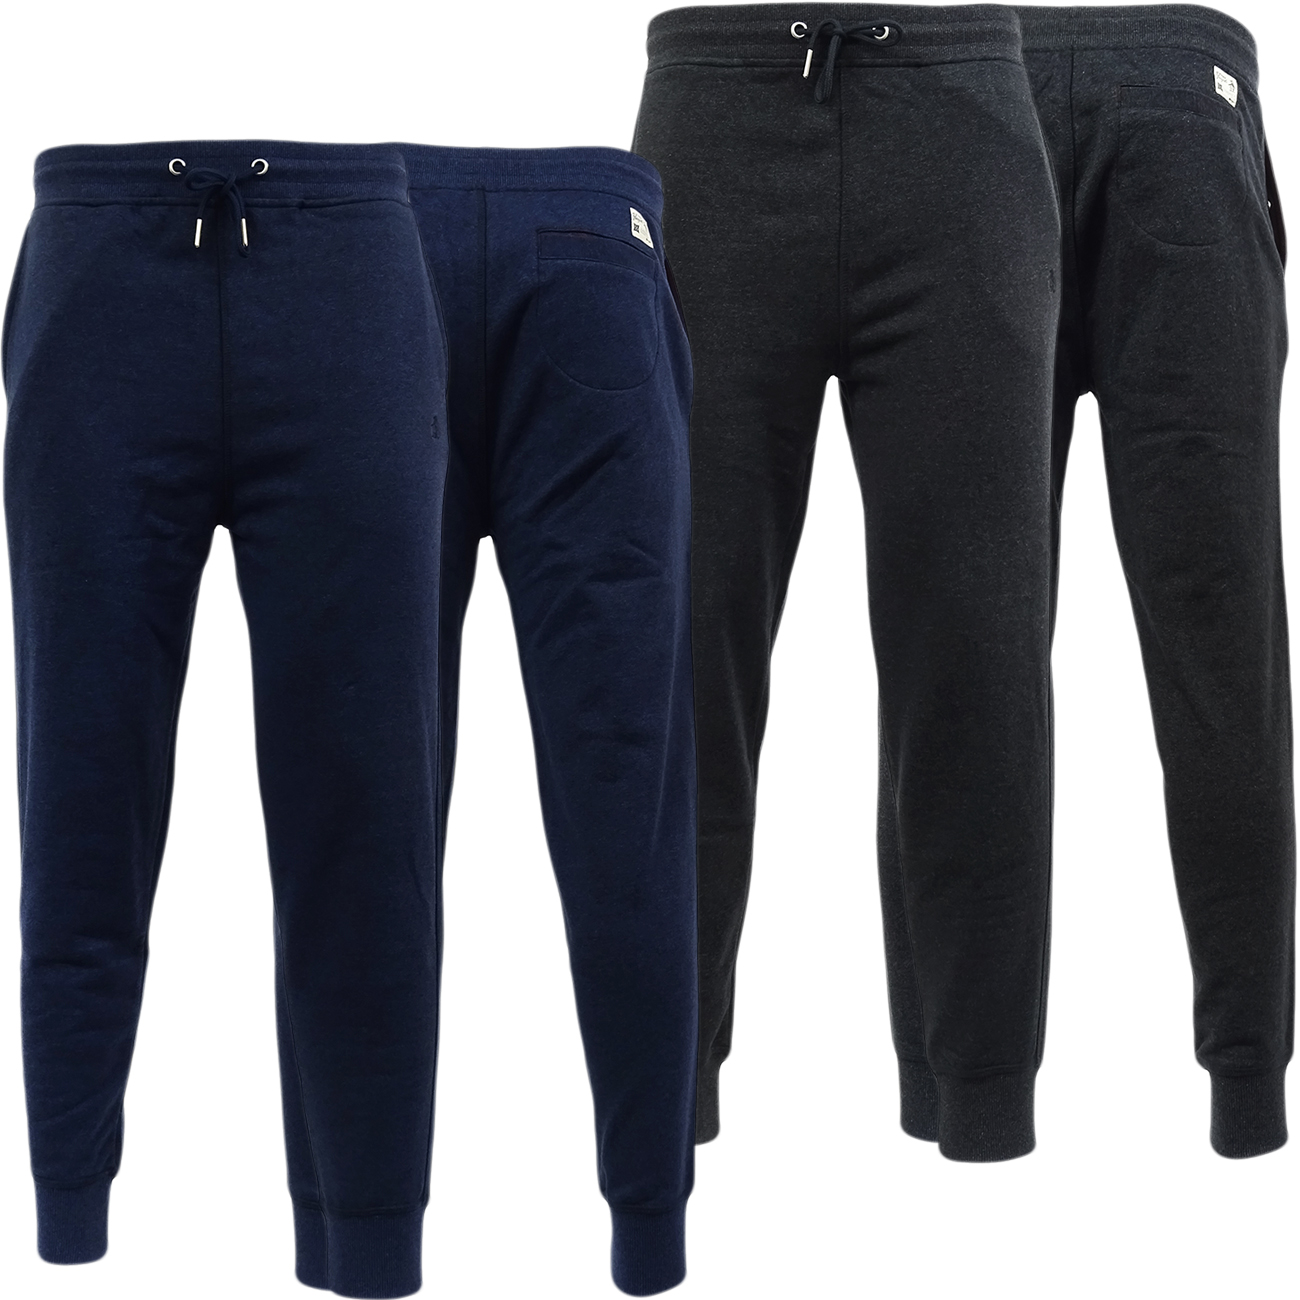 Get the comfort and style you want at the prices you need with men's jogger pants from Old Navy. Whether you're relaxing on the weekend, running errands, or heading to the gym, our jogger collection features sleek looks and always-comfortable construction. Old Navy guy's joggers are not your dad's sweatpants. Updated with modern appeal, this selection boasts a range of looks from cargo-style and .